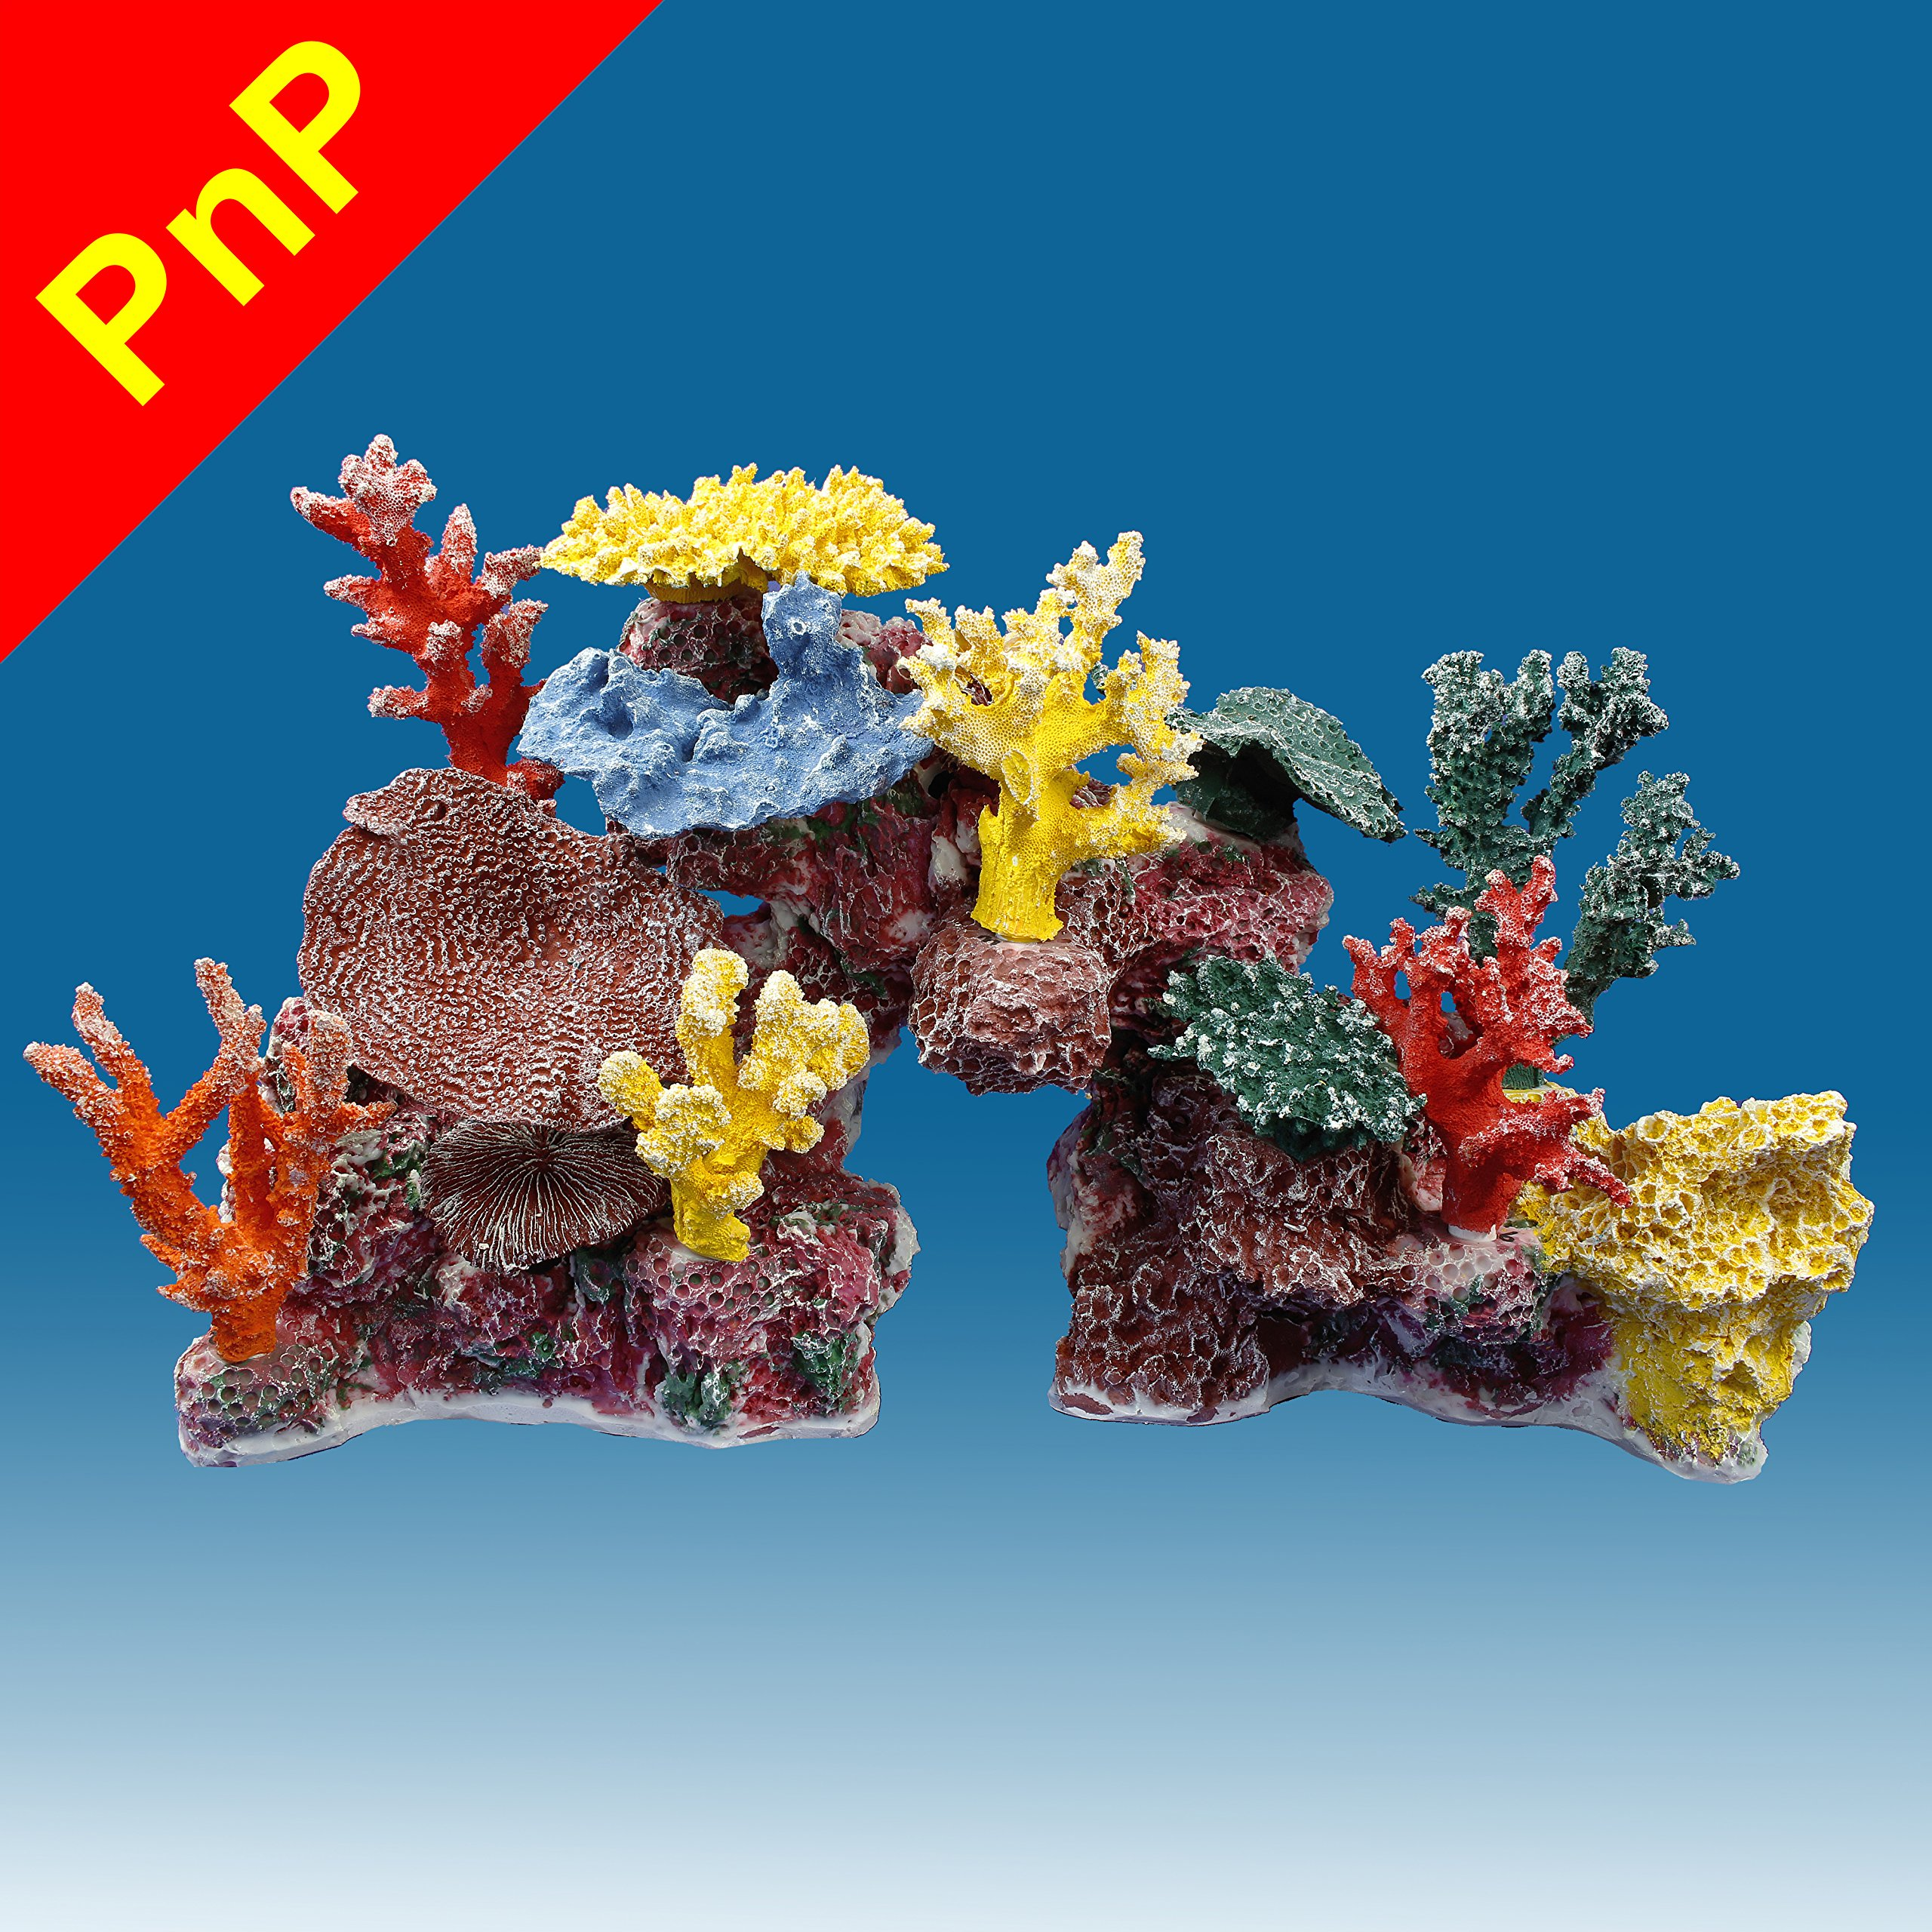 Instant Reef DM045PNP Large Artificial Coral Inserts Decor, Fake Coral Reef Decorations for Colorful Freshwater Fish Aquariums, Marine and Saltwater Fish Tanks by Instant Reef